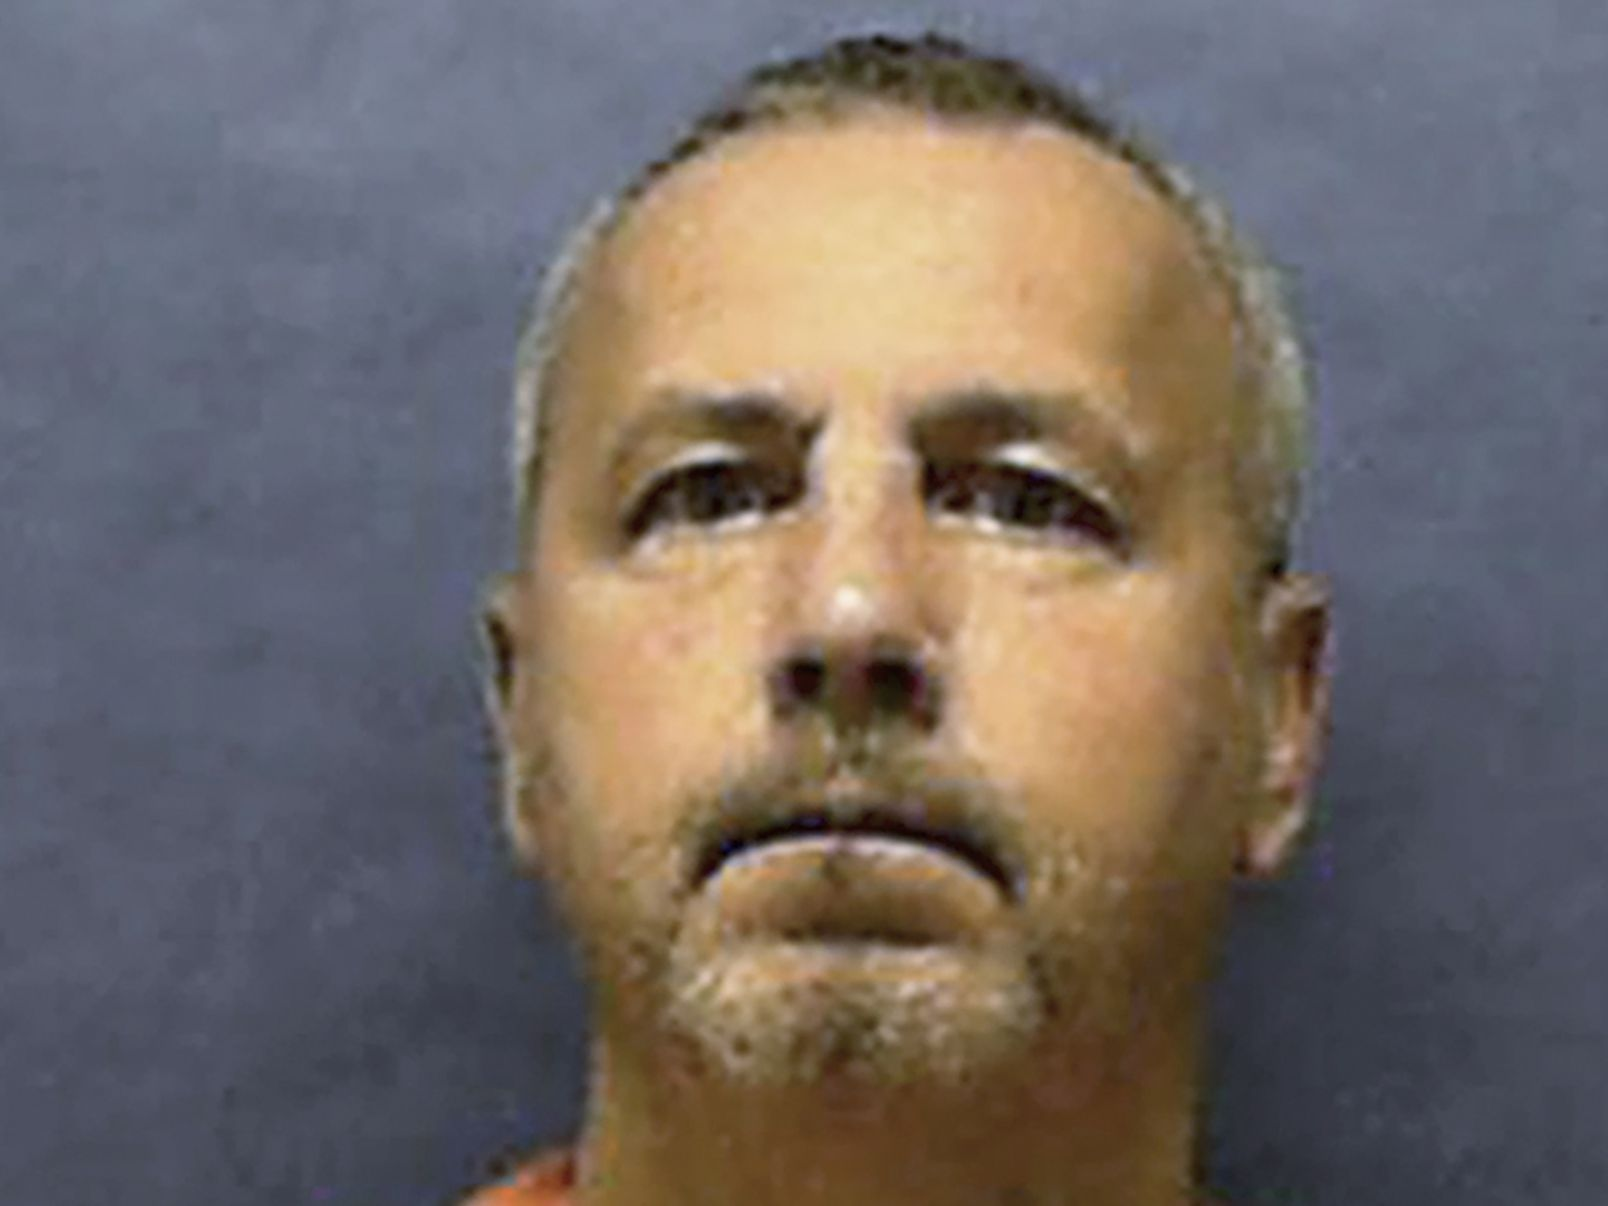 Serial killer who preyed on gay men executed in Florida